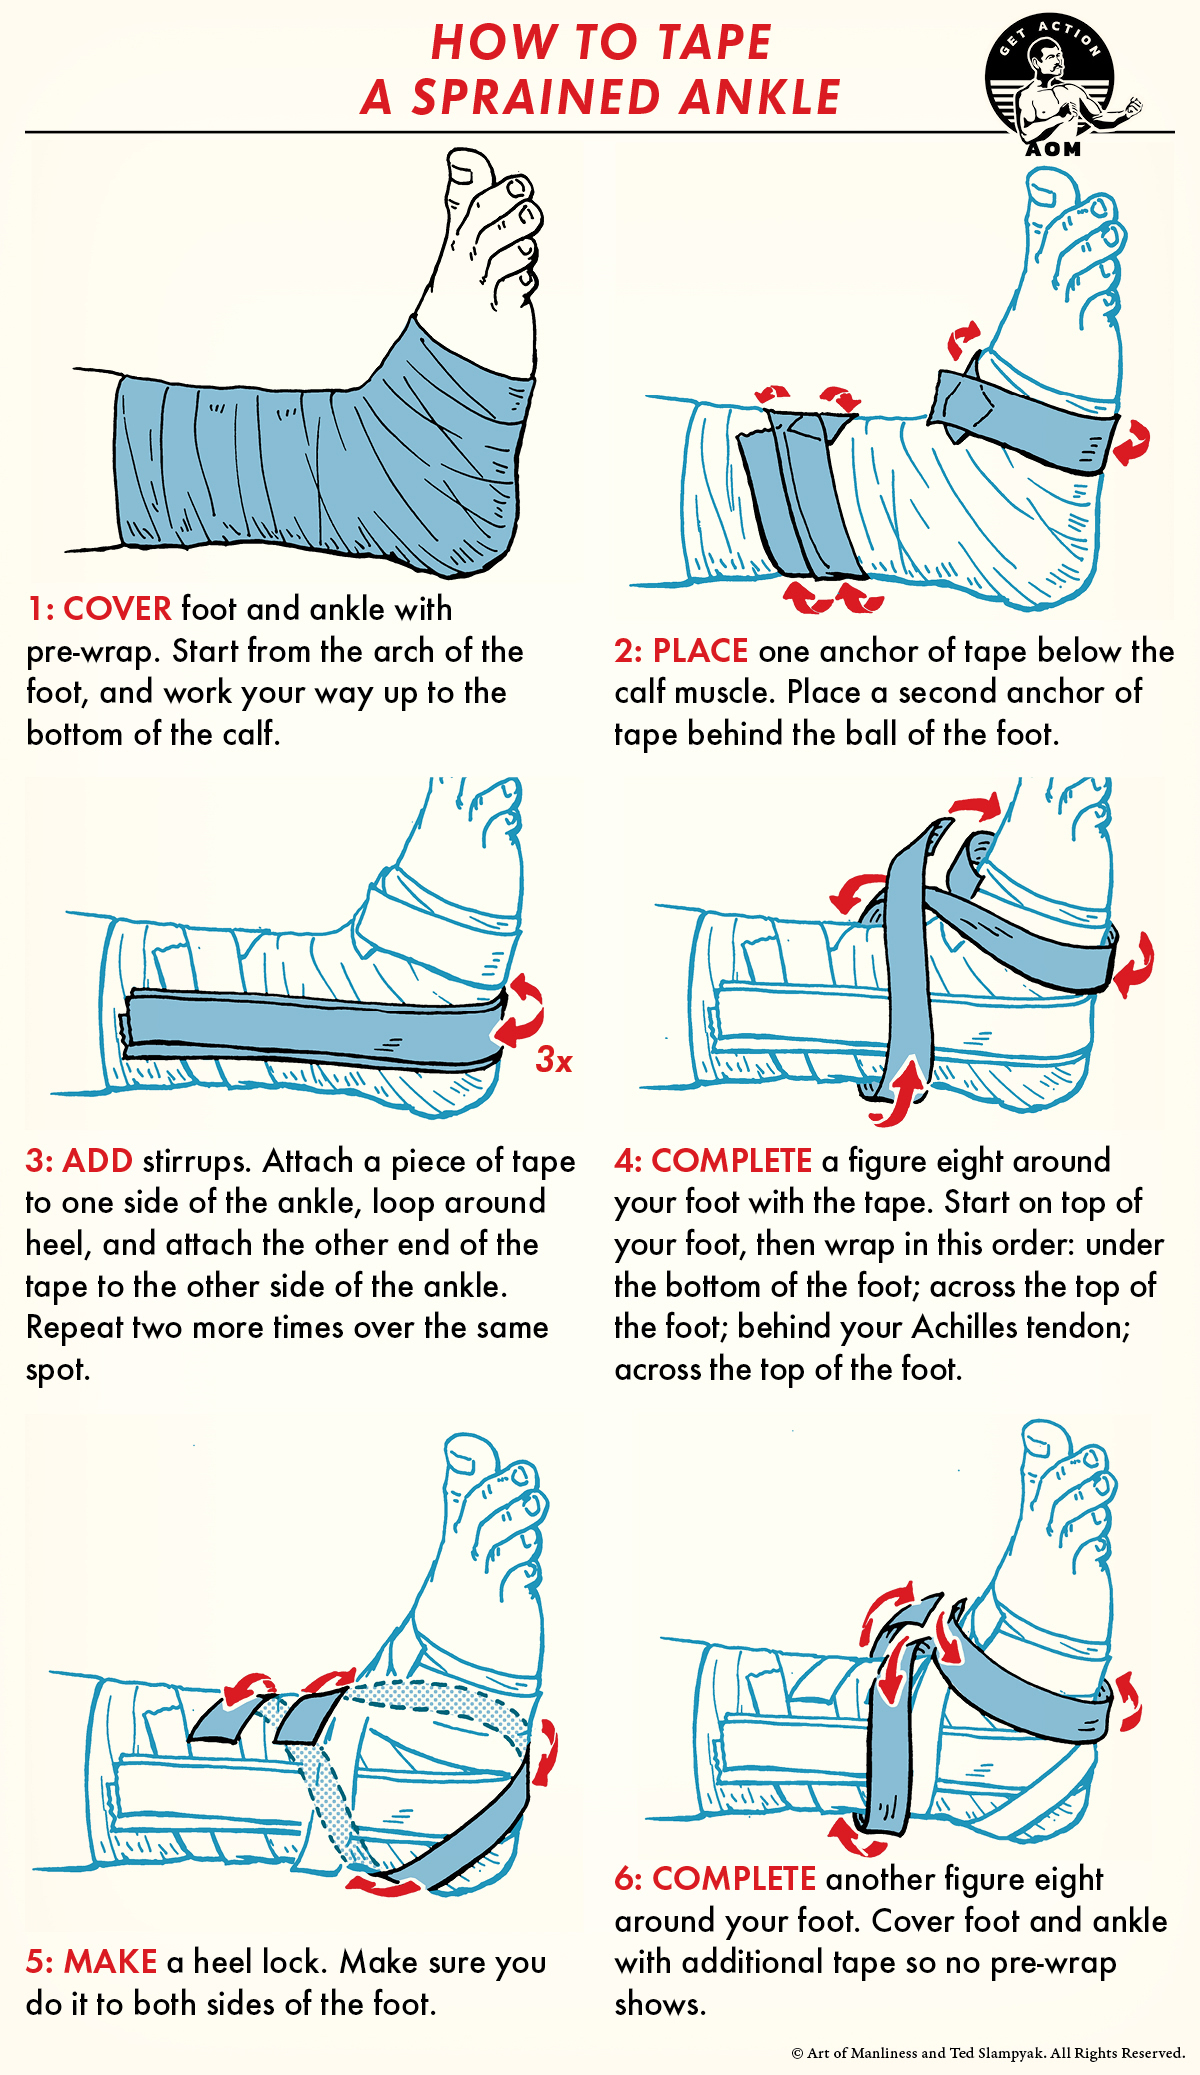 Guide to sprained ankle.